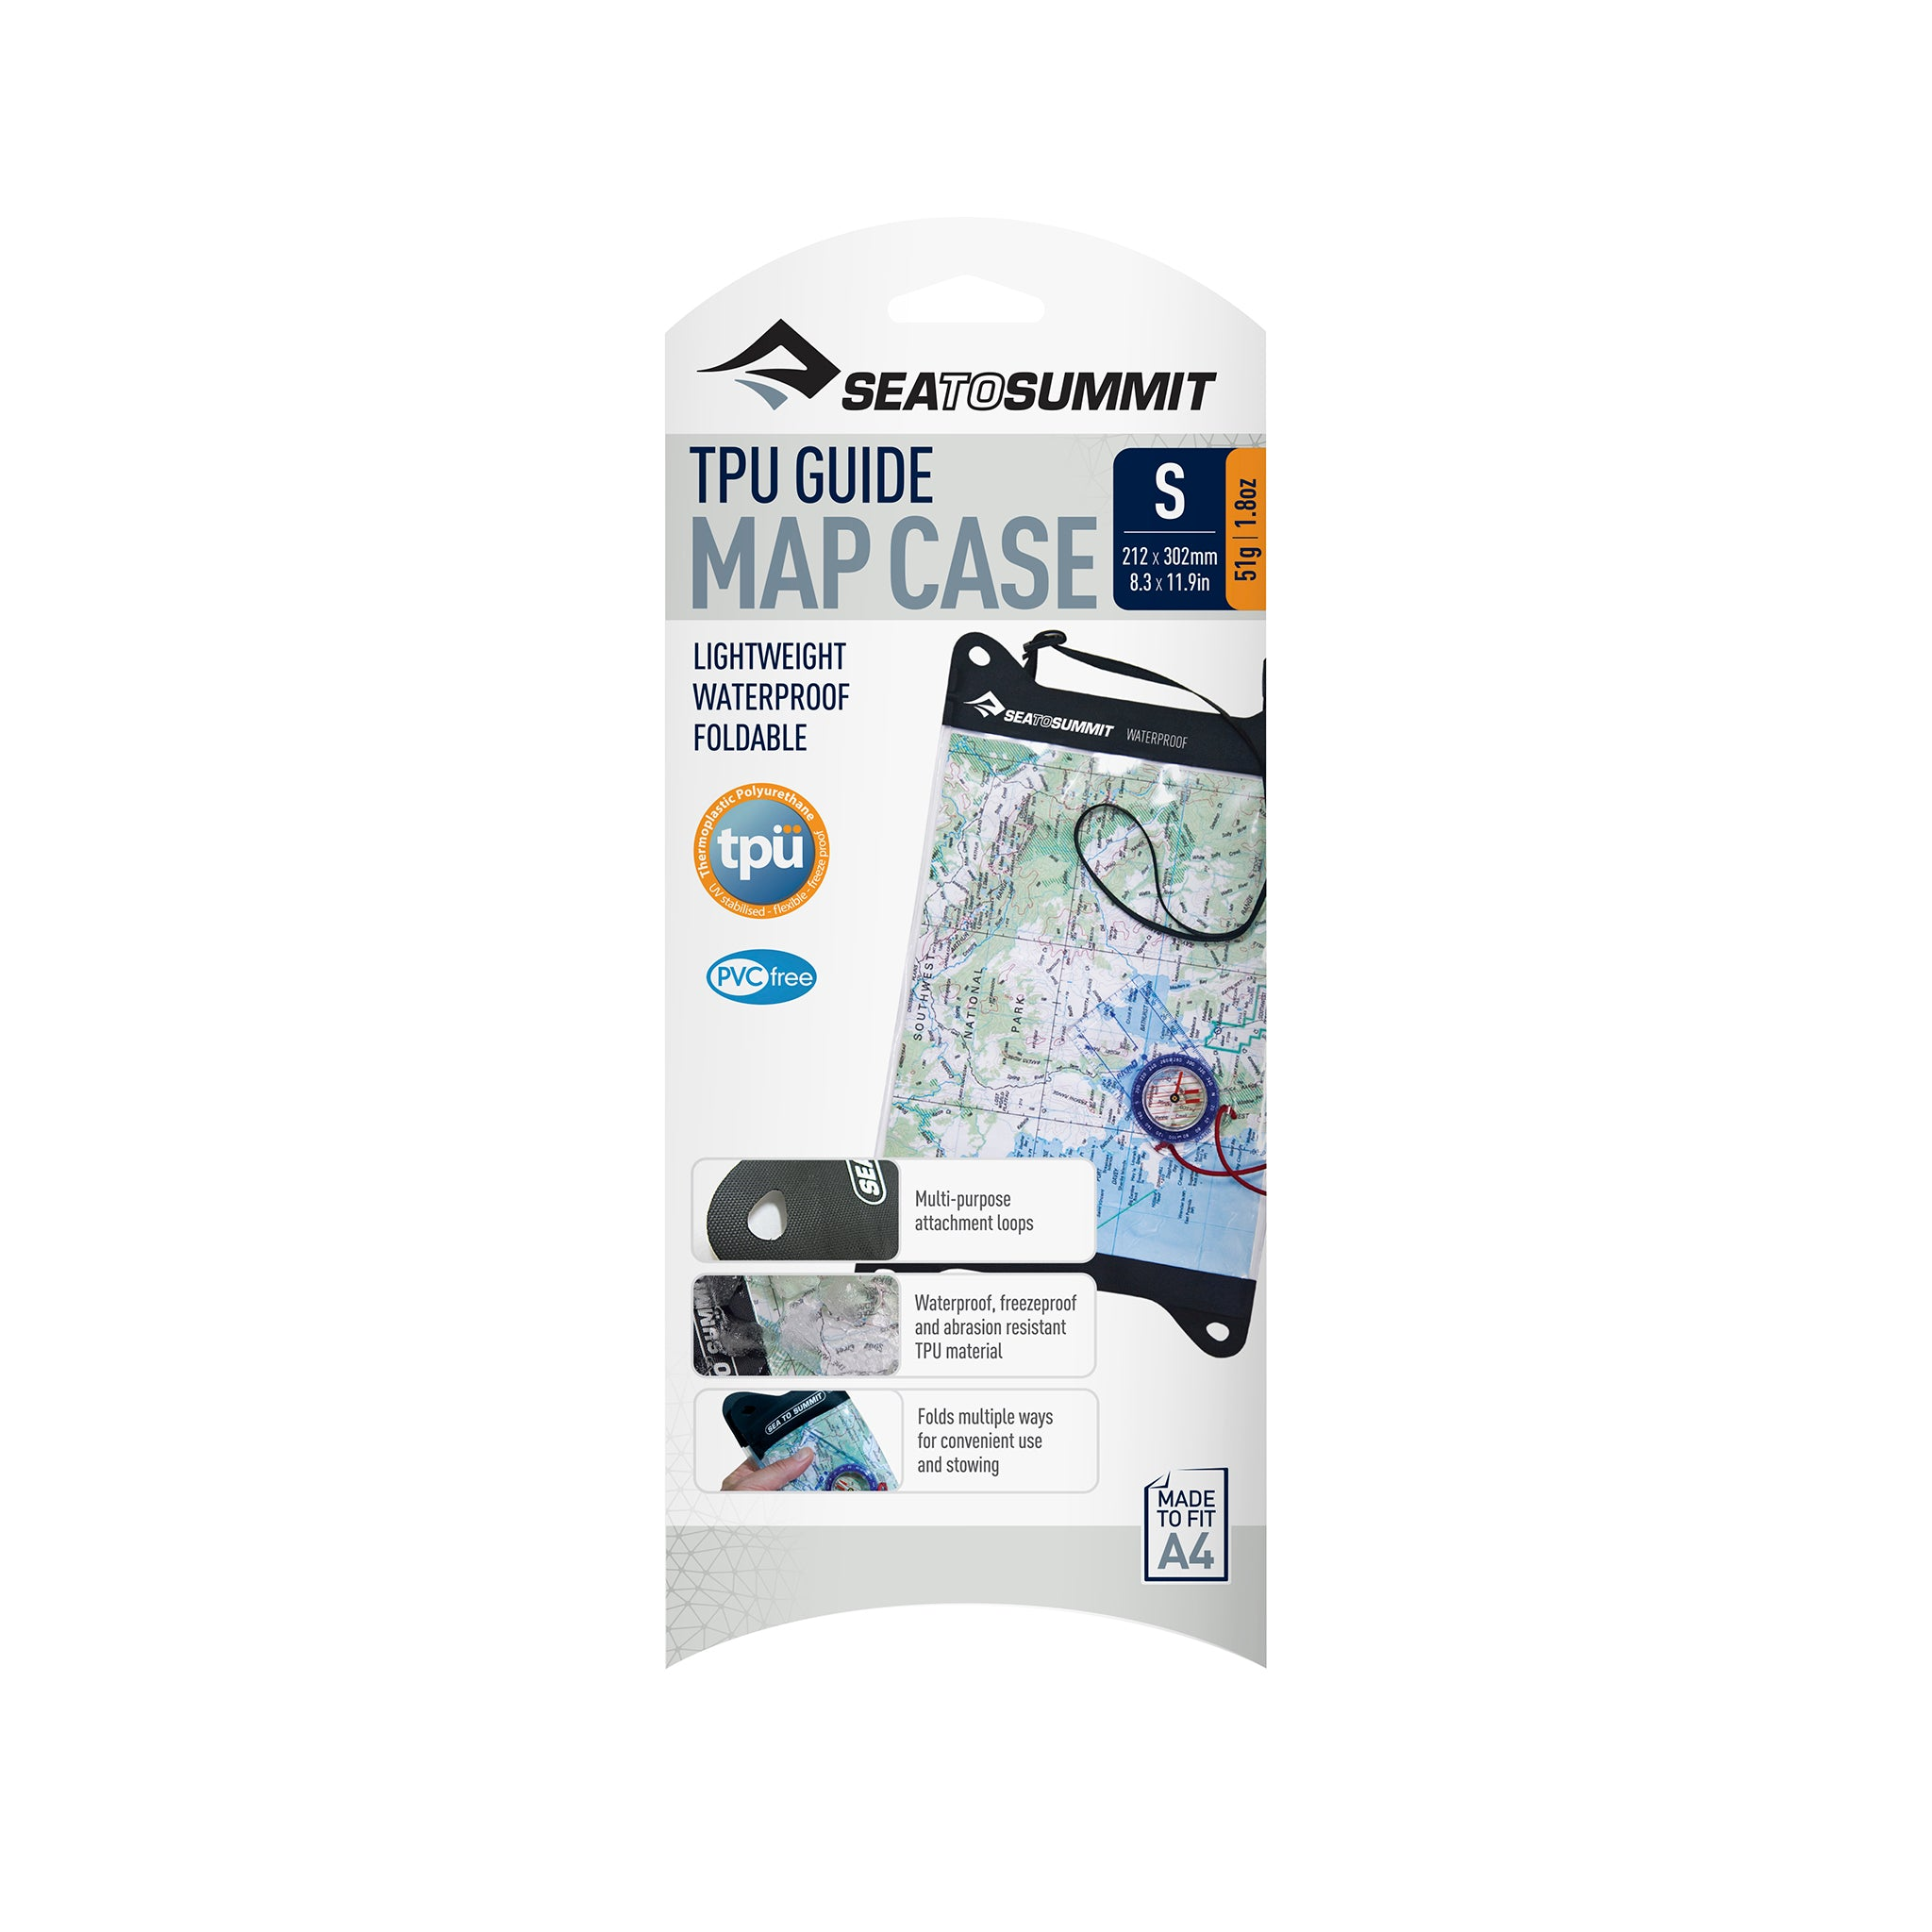 TPU Guide Map Case _ waterproof map holder and protector _ small